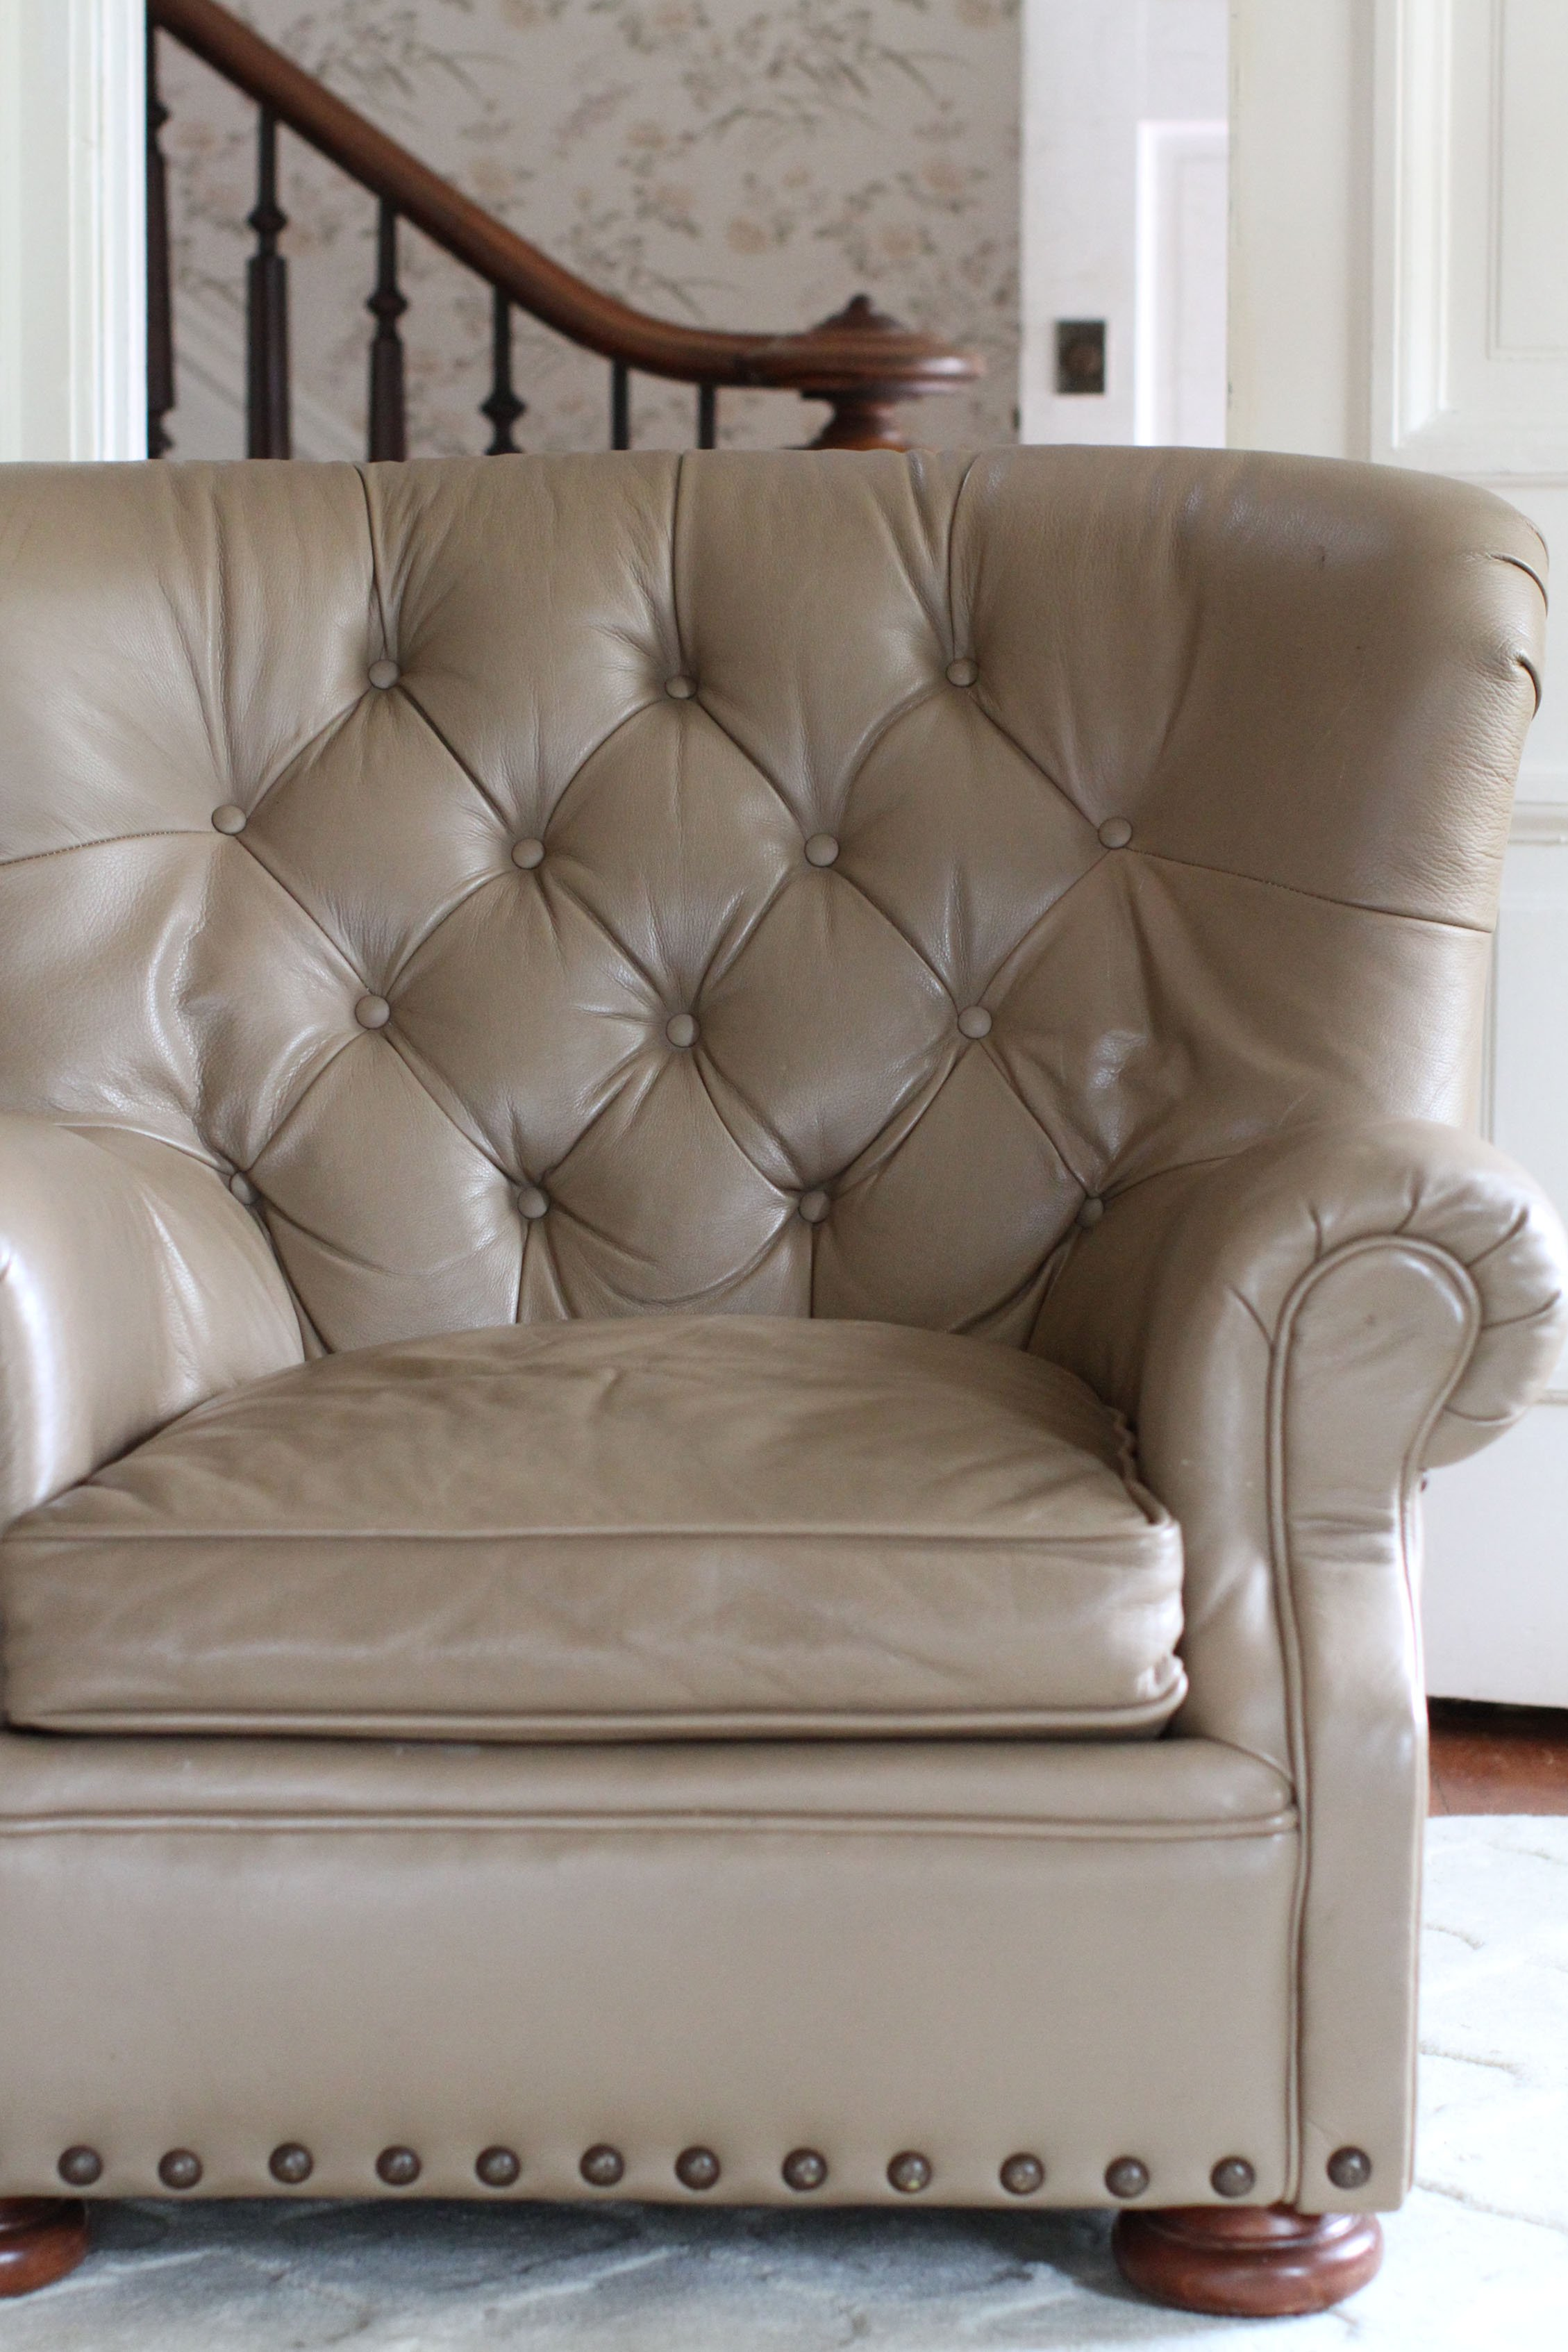 How To Clean Leather Furniture Apartment Therapy